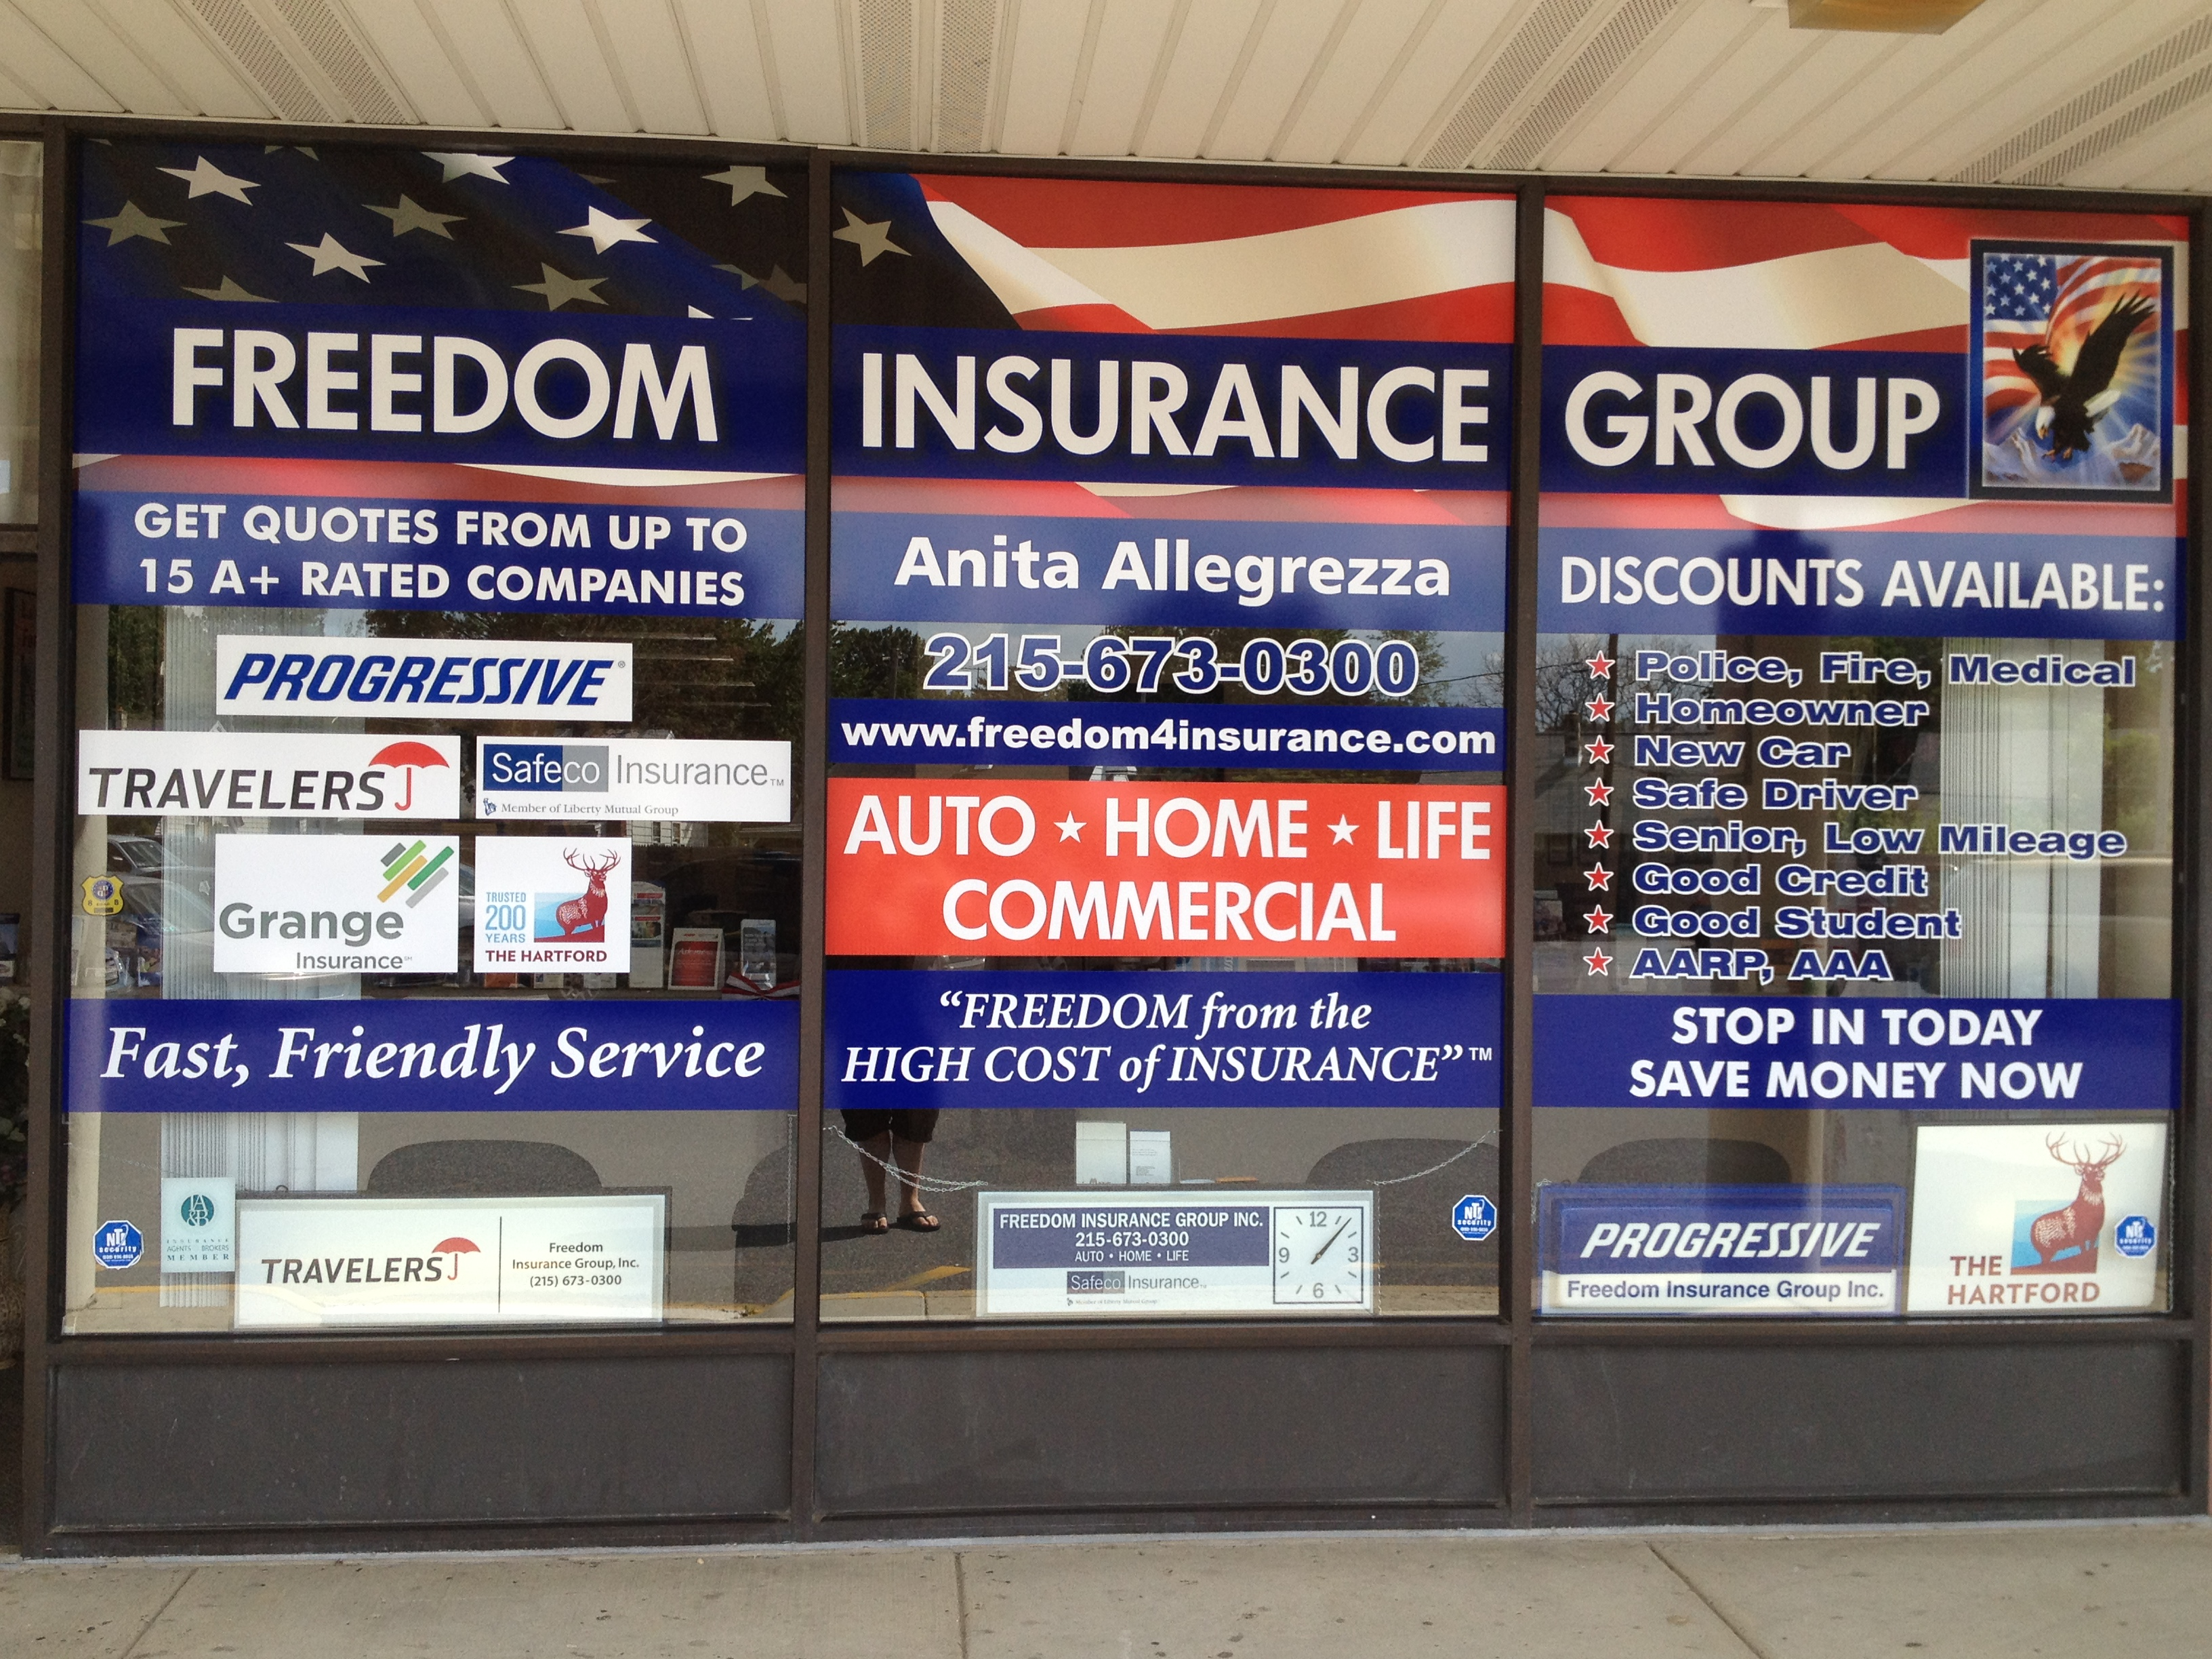 Freedom Insurance Group, Inc